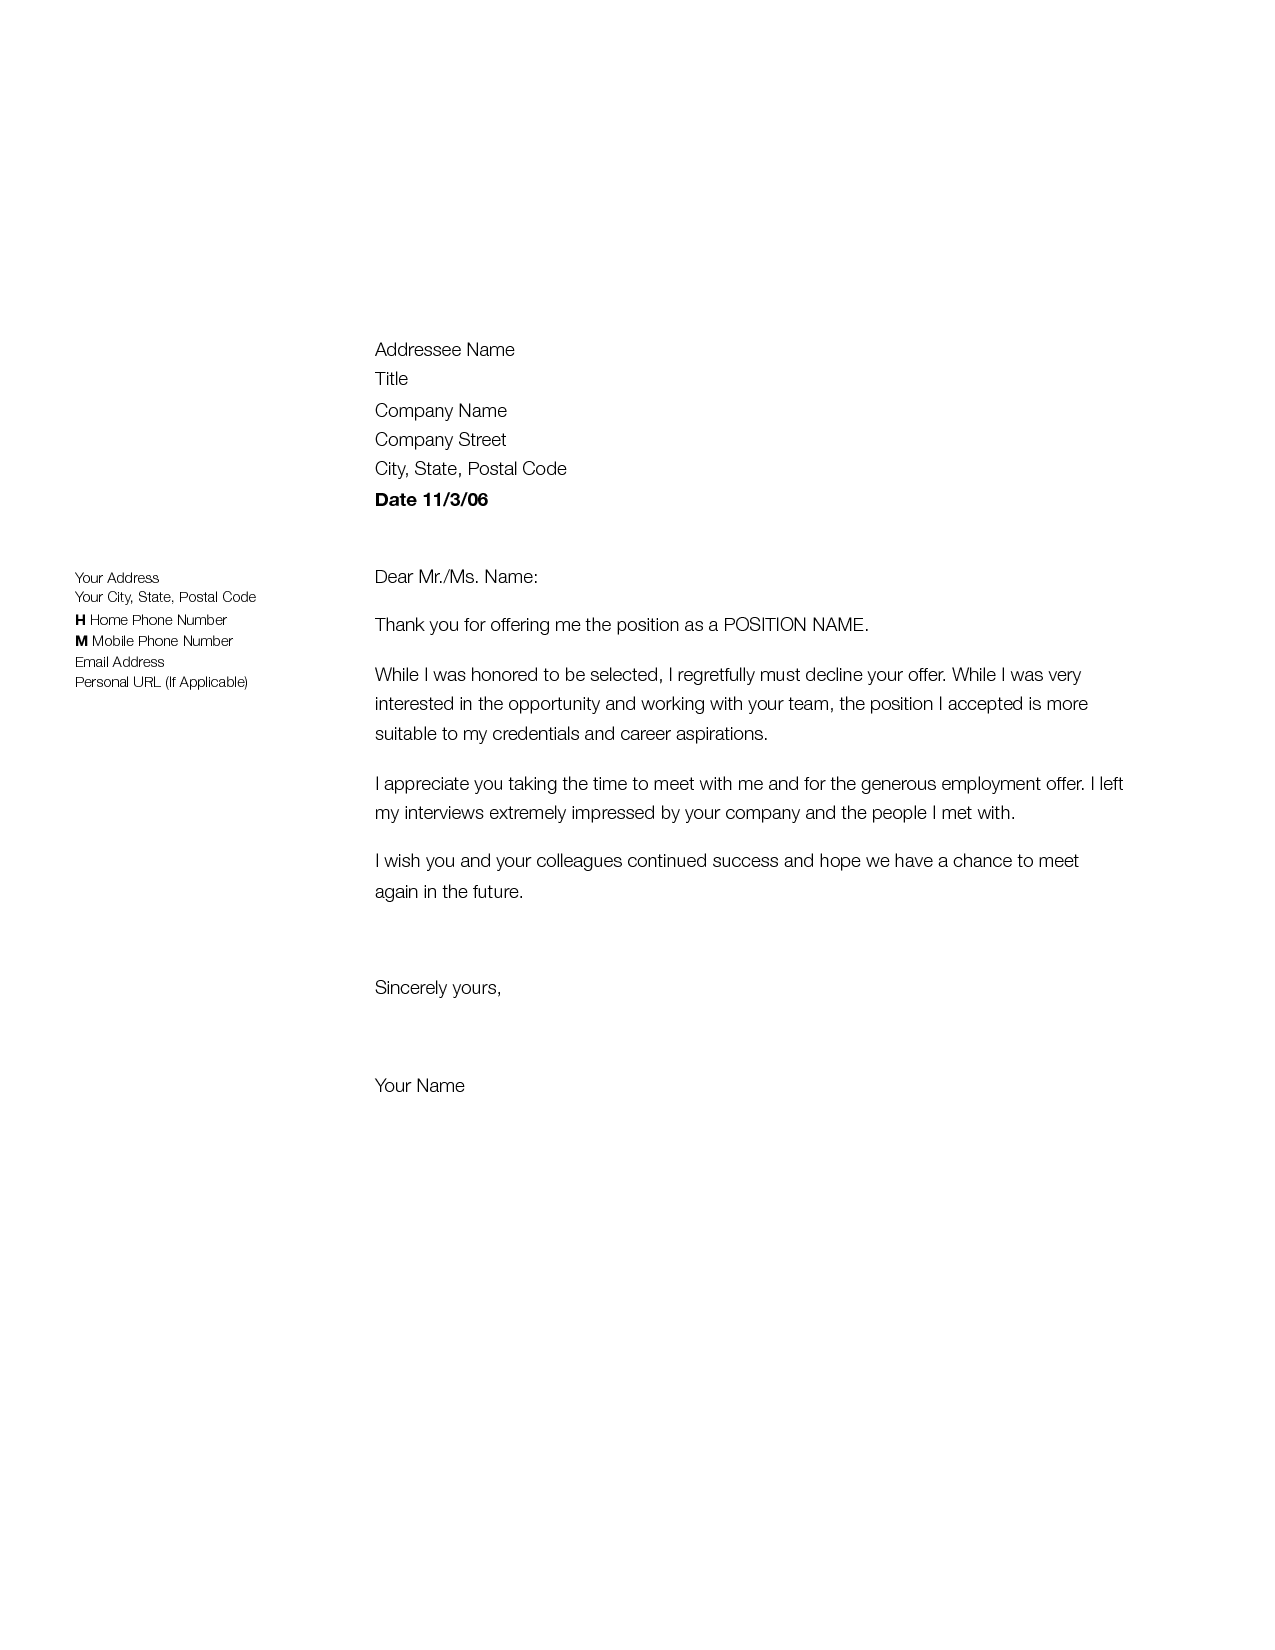 job decline letter sample employment rejection letter to let an employer know that you are not accepting a job offer